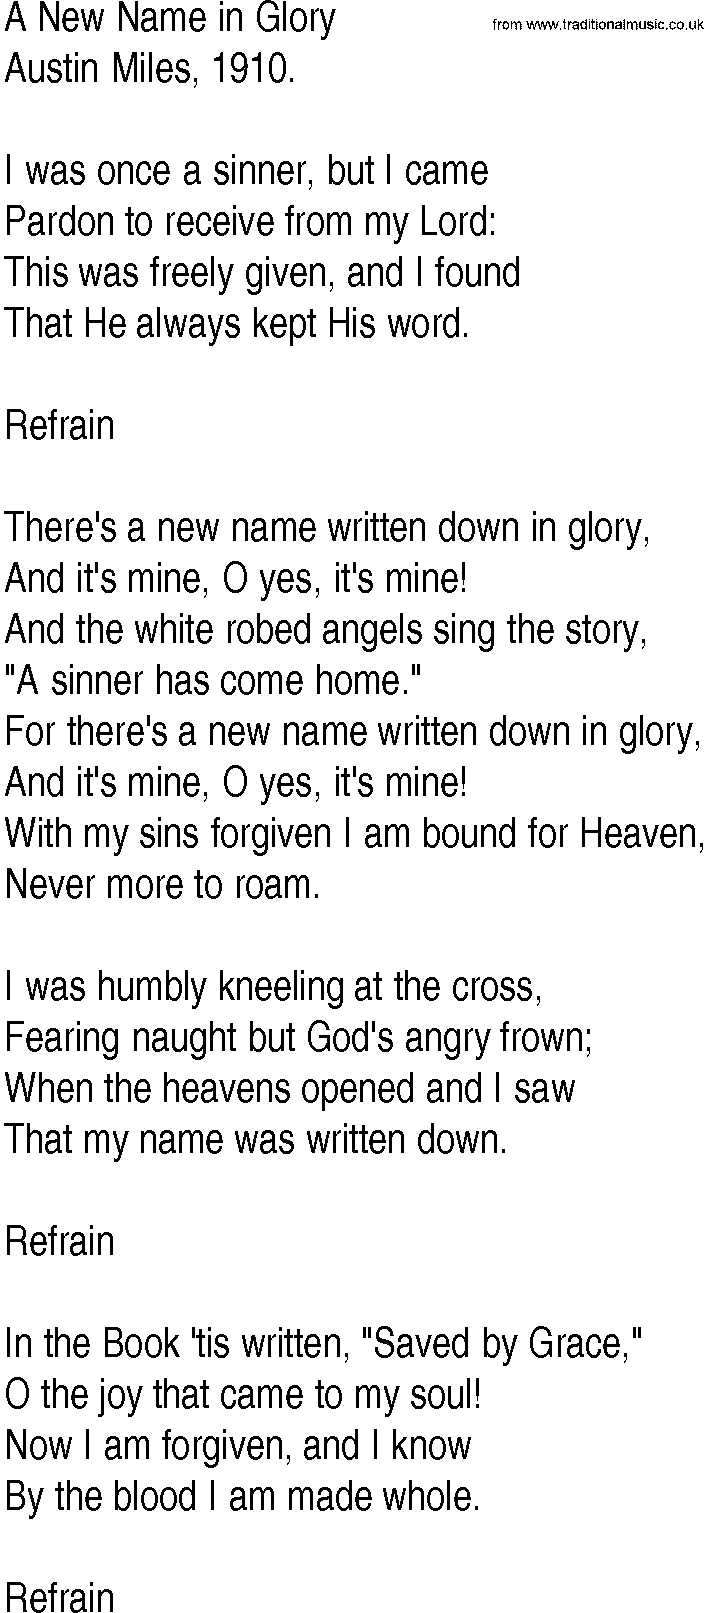 Hymn and Gospel Song Lyrics for A New Name in Glory by Austin Miles